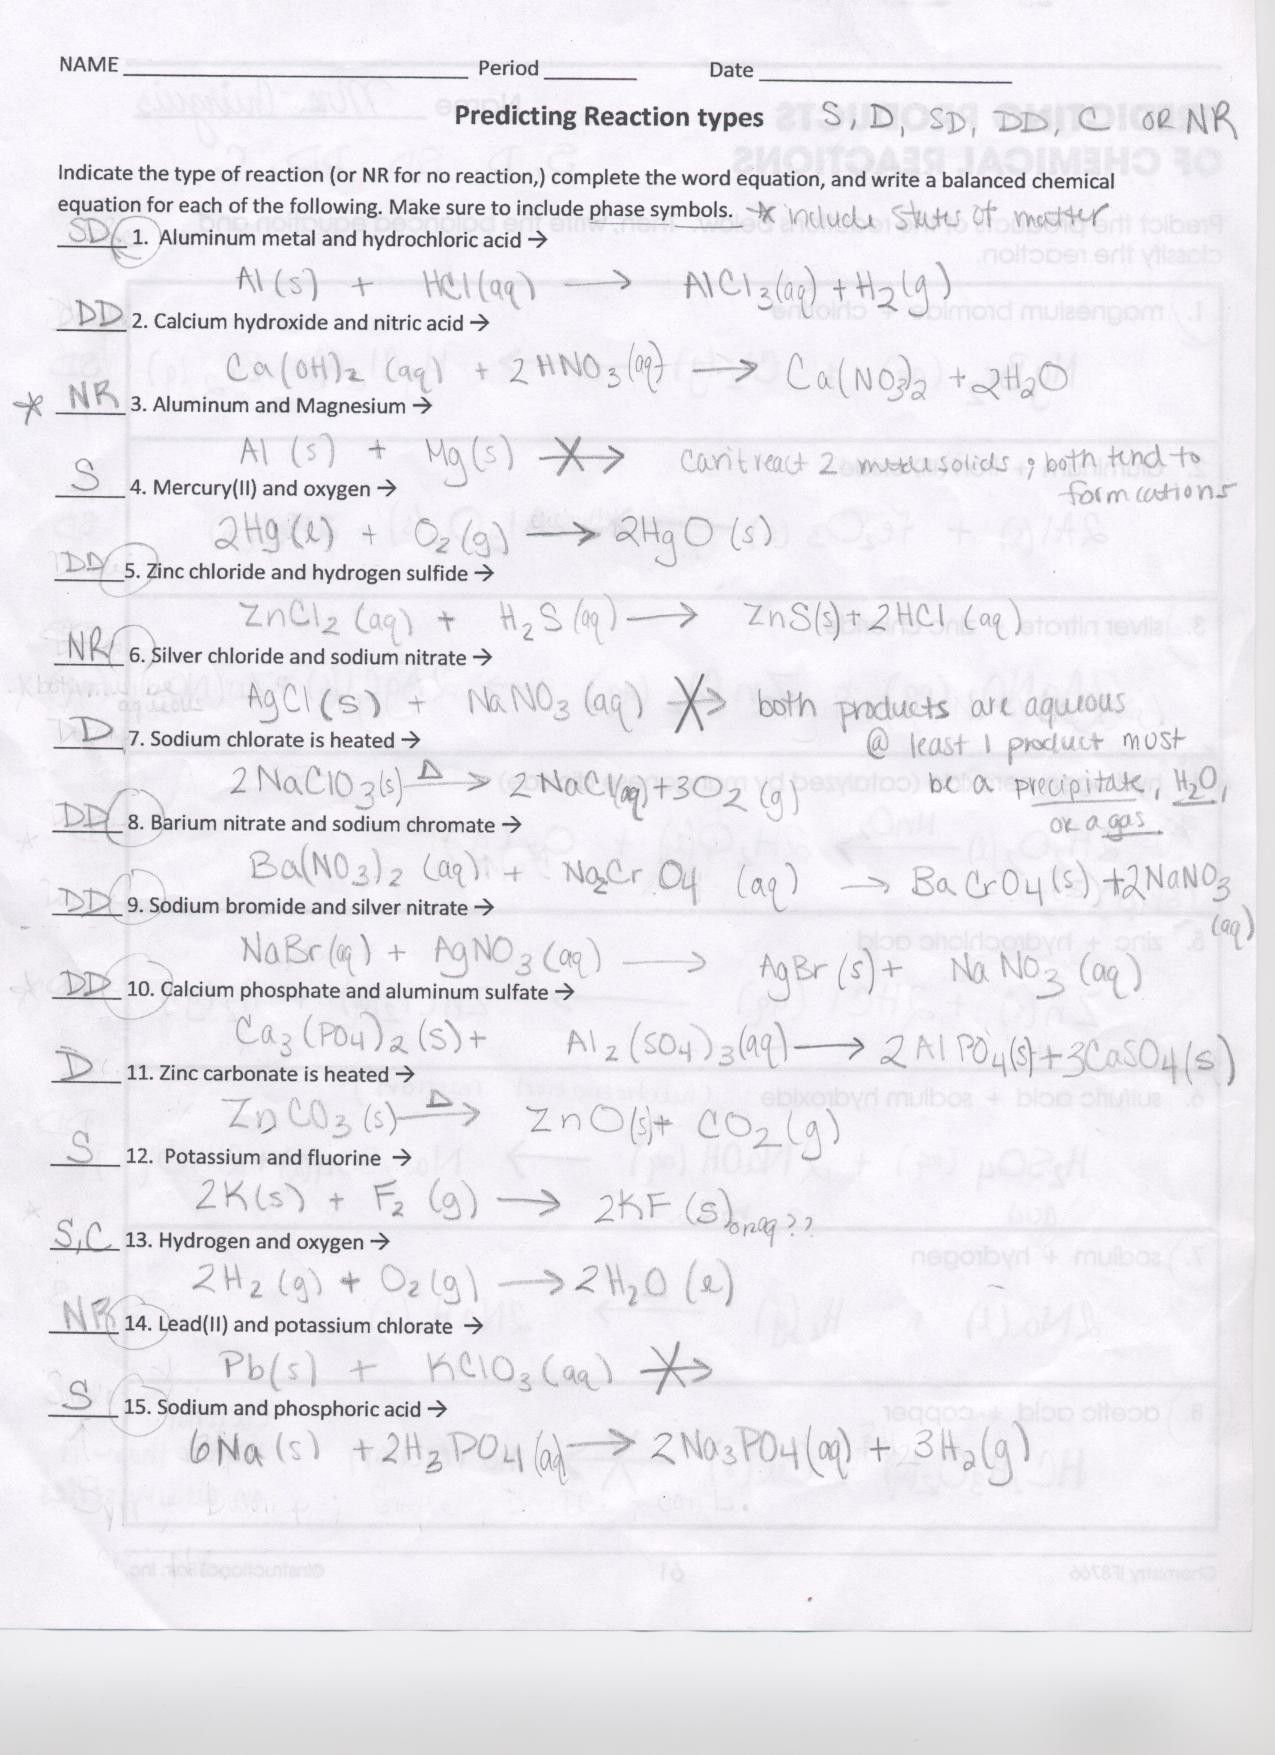 Writing Symbols In Chemical Reactions Worksheet Answers